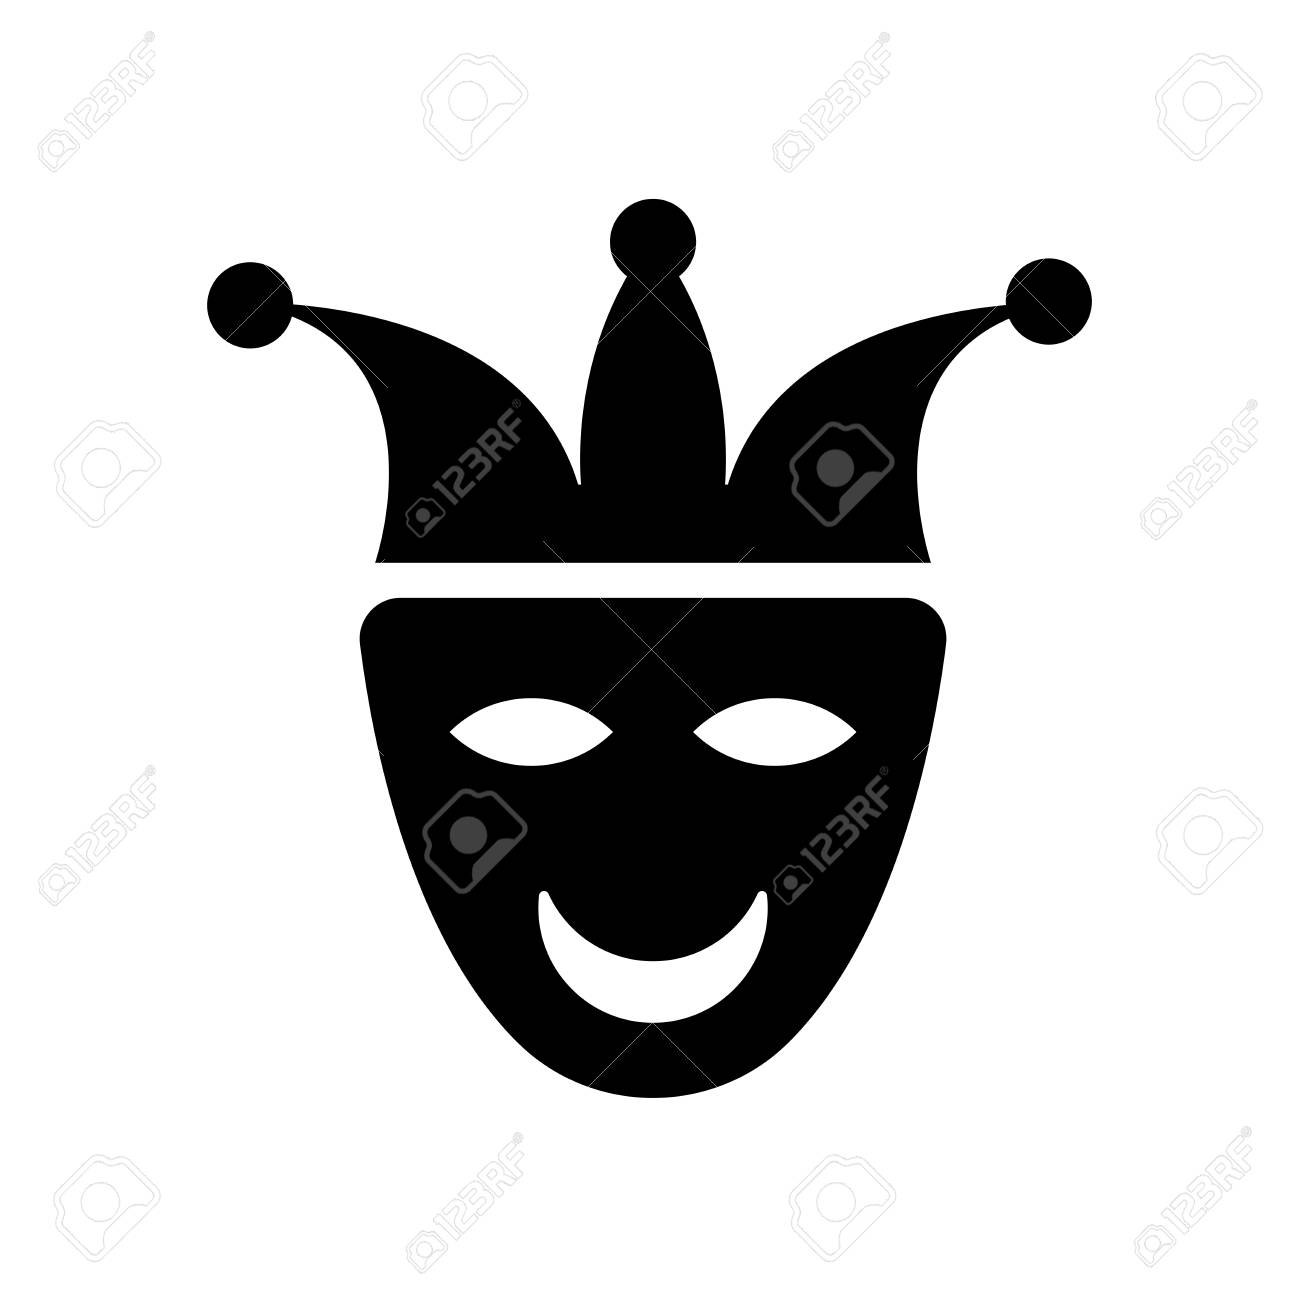 Joker face icon vector isolated on white background for your web and mobile app design